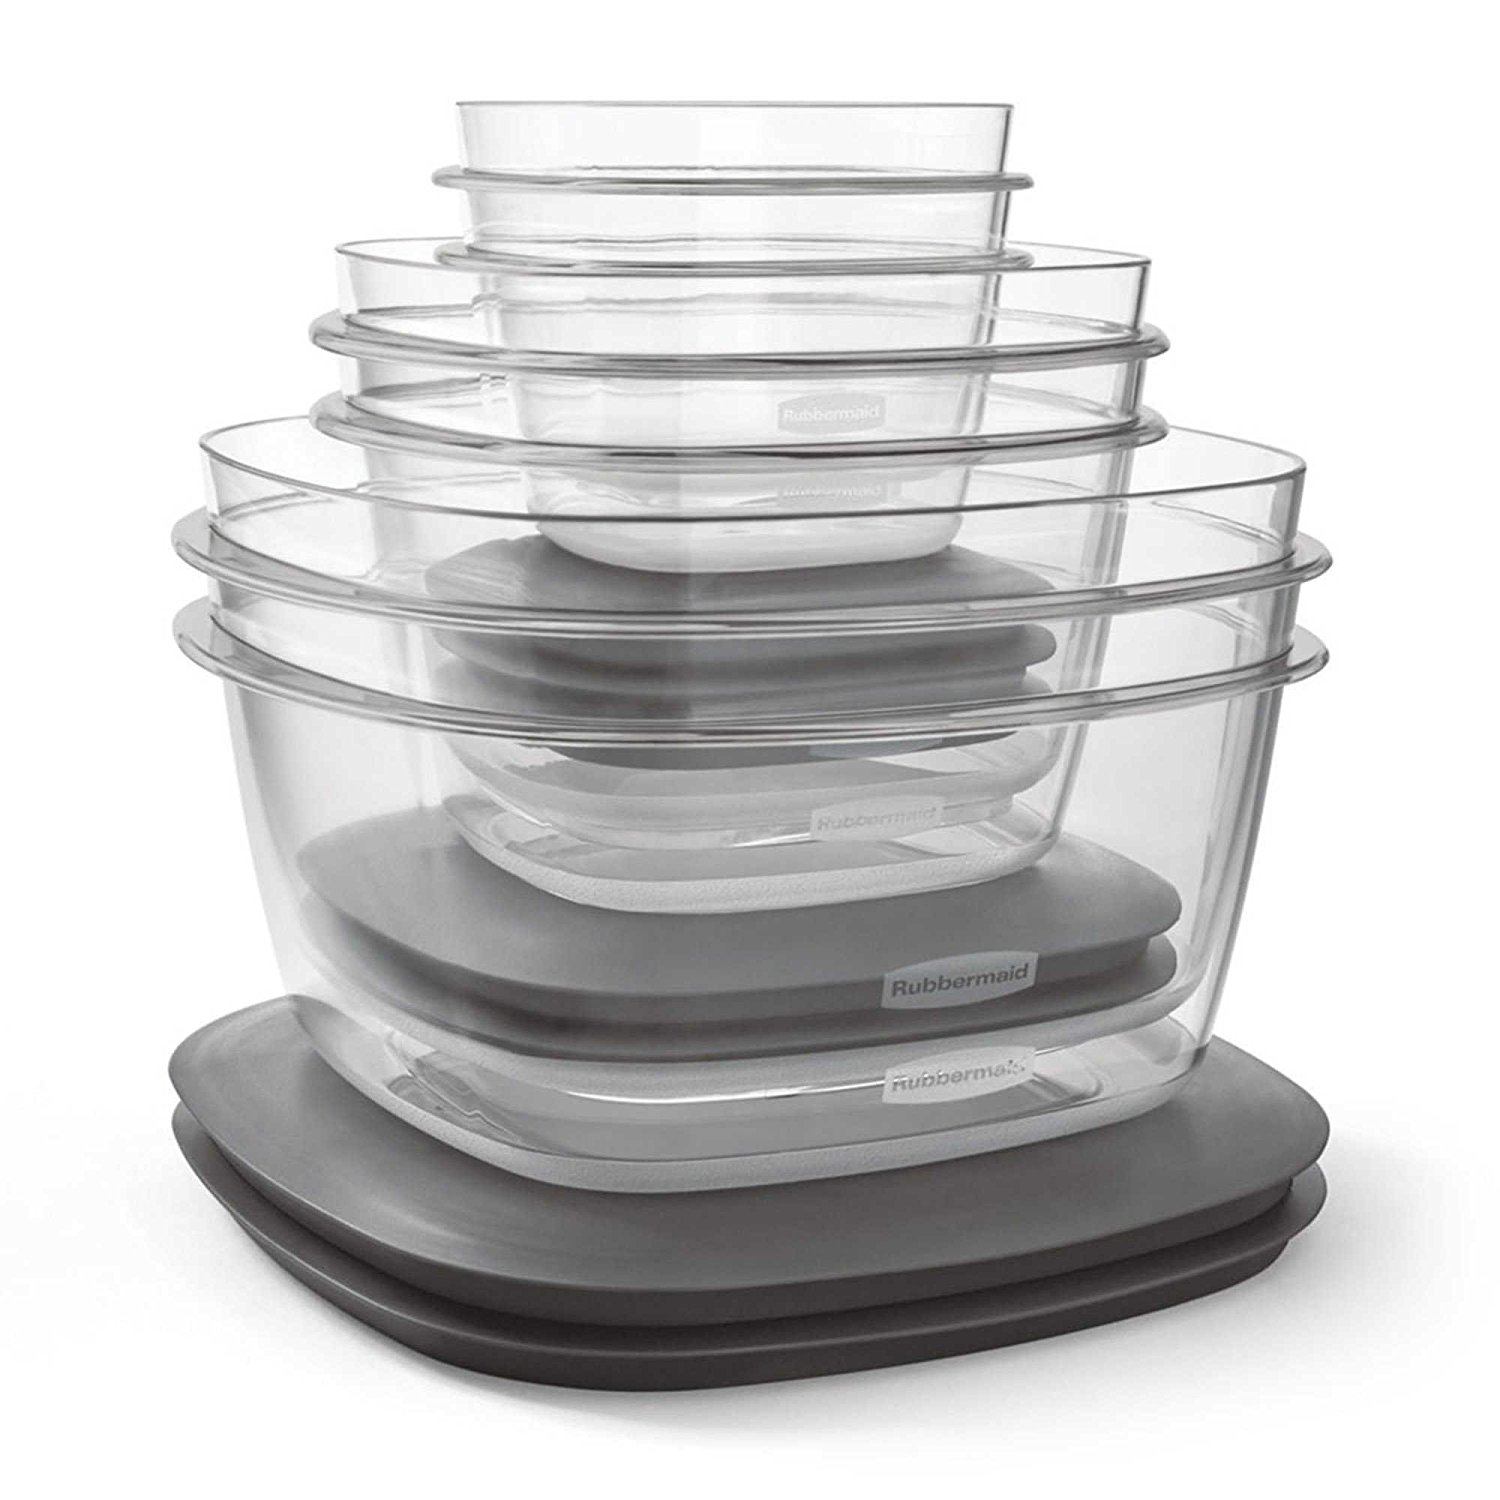 Rubbermaid New Premier Food Storage Set